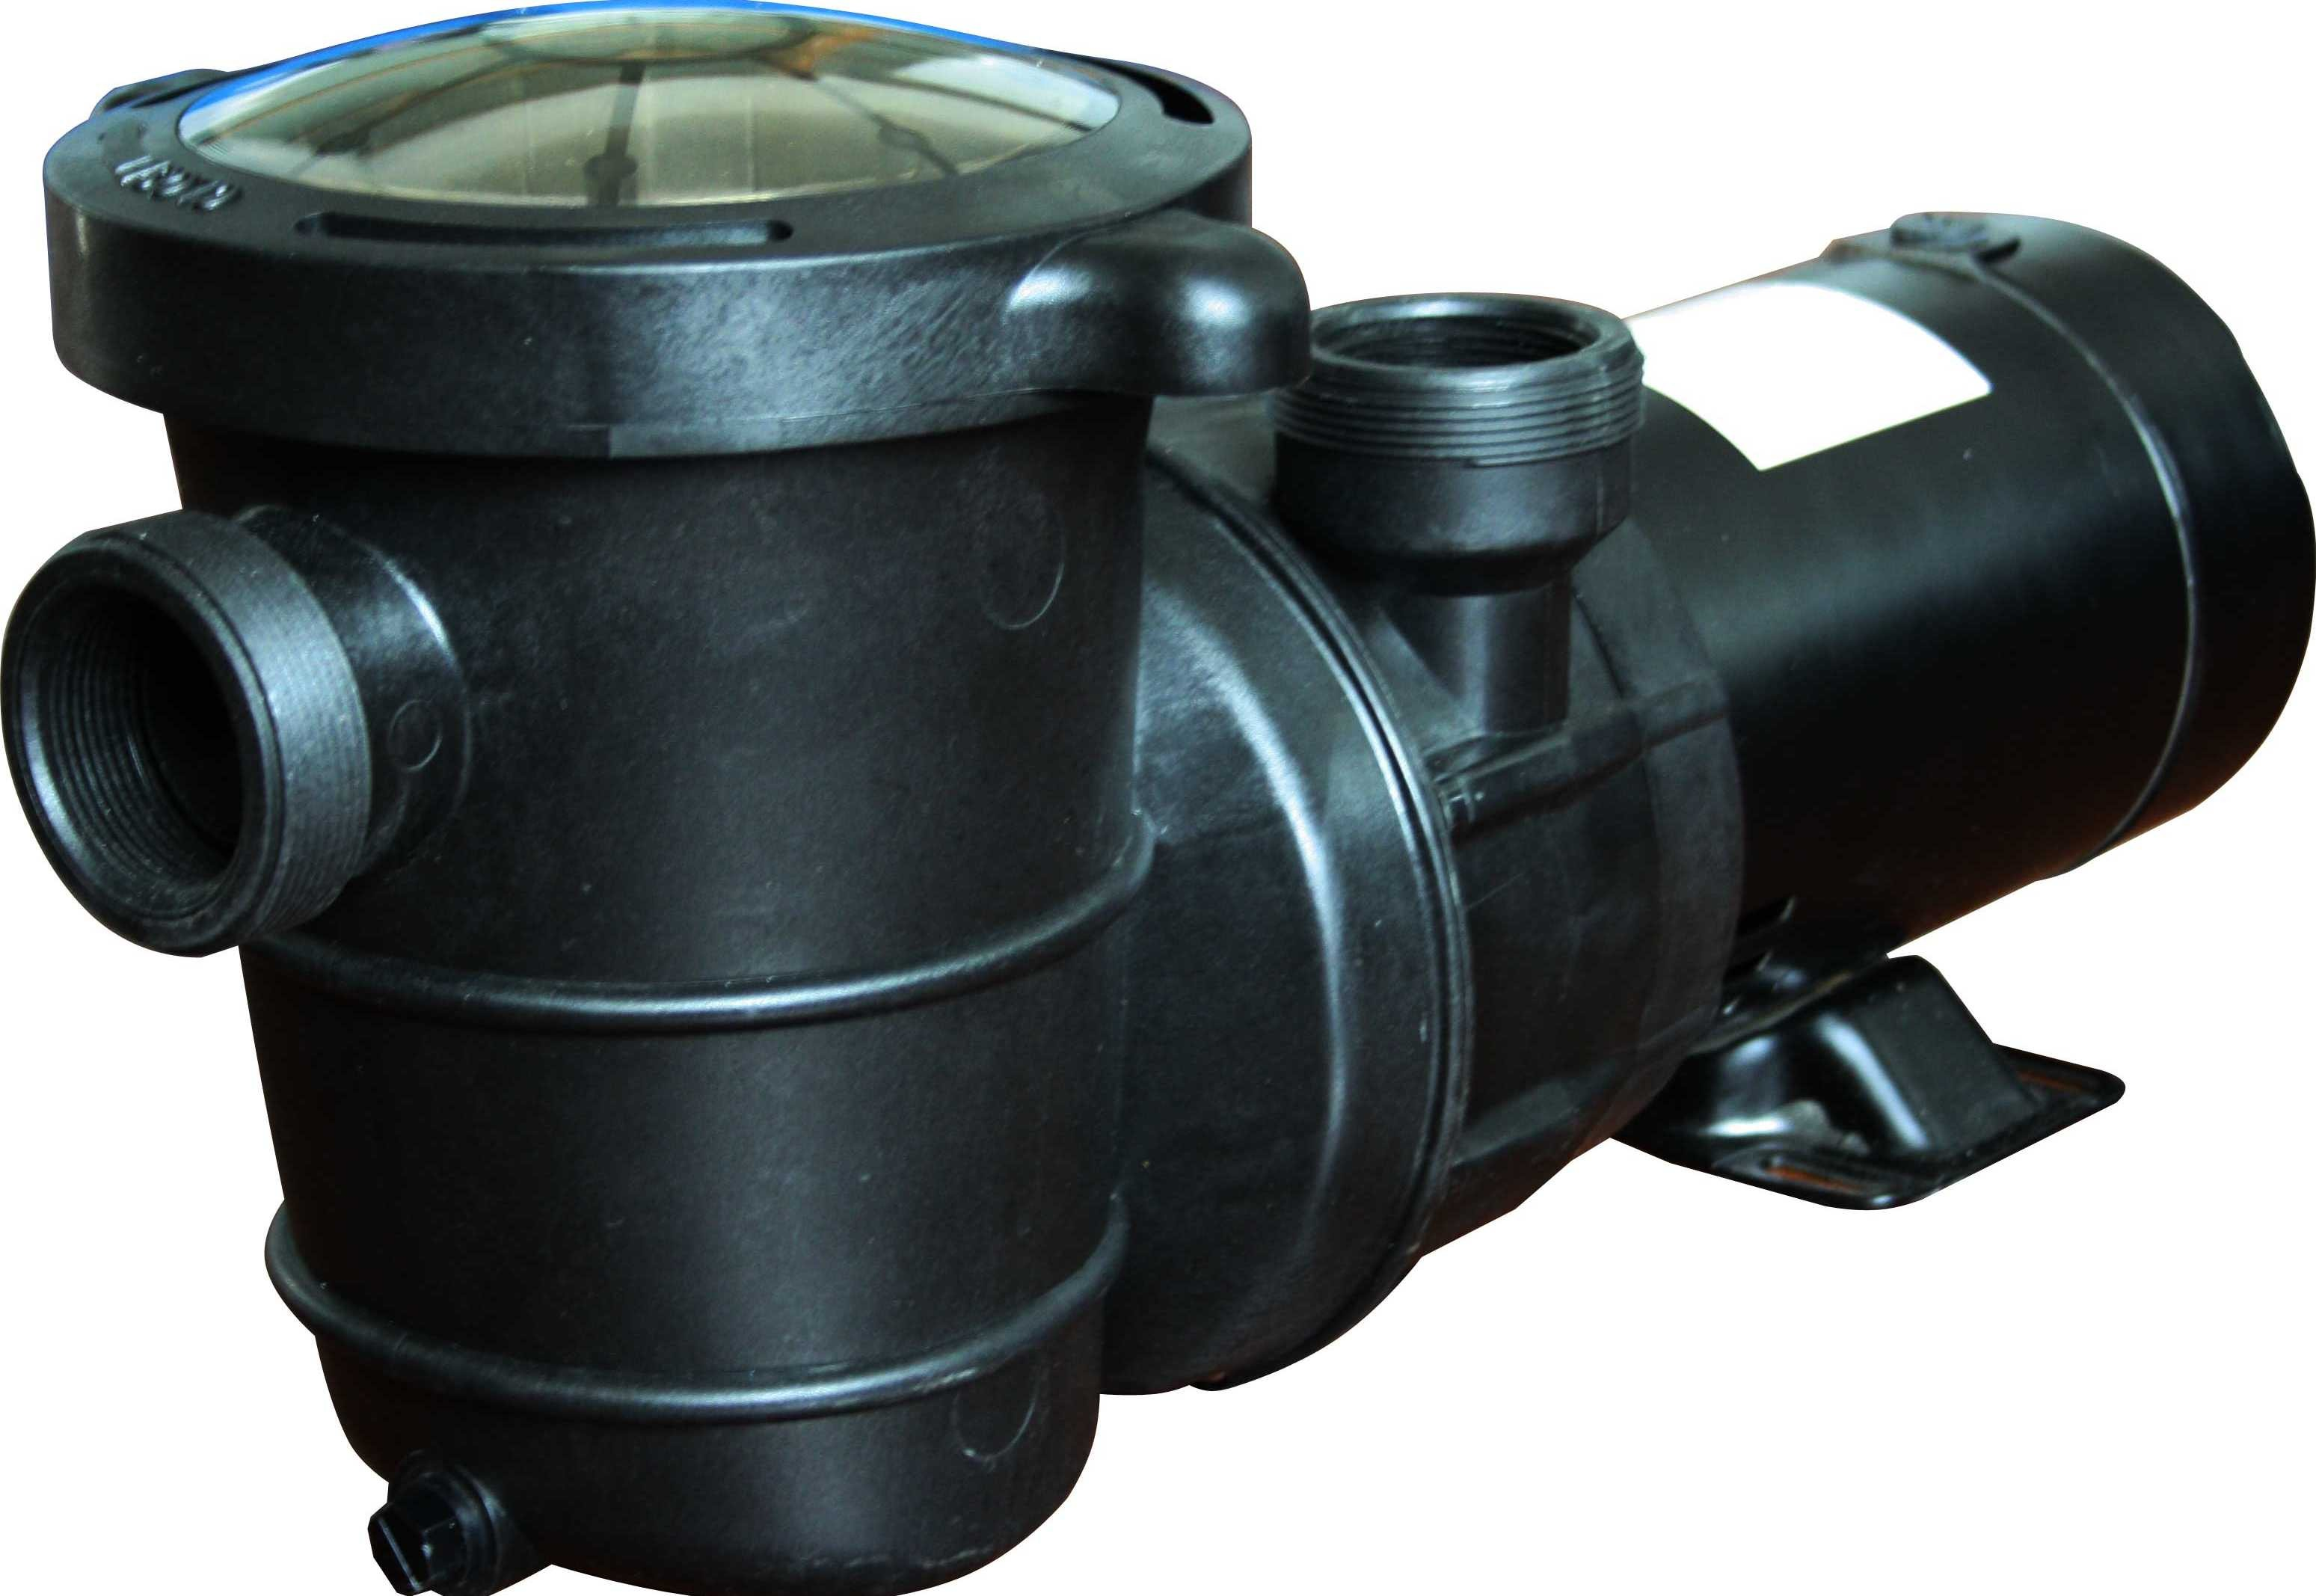 High Performance Swimming Pool Pump Above-Ground 1.5 HP-115v w/ 6 ft cord